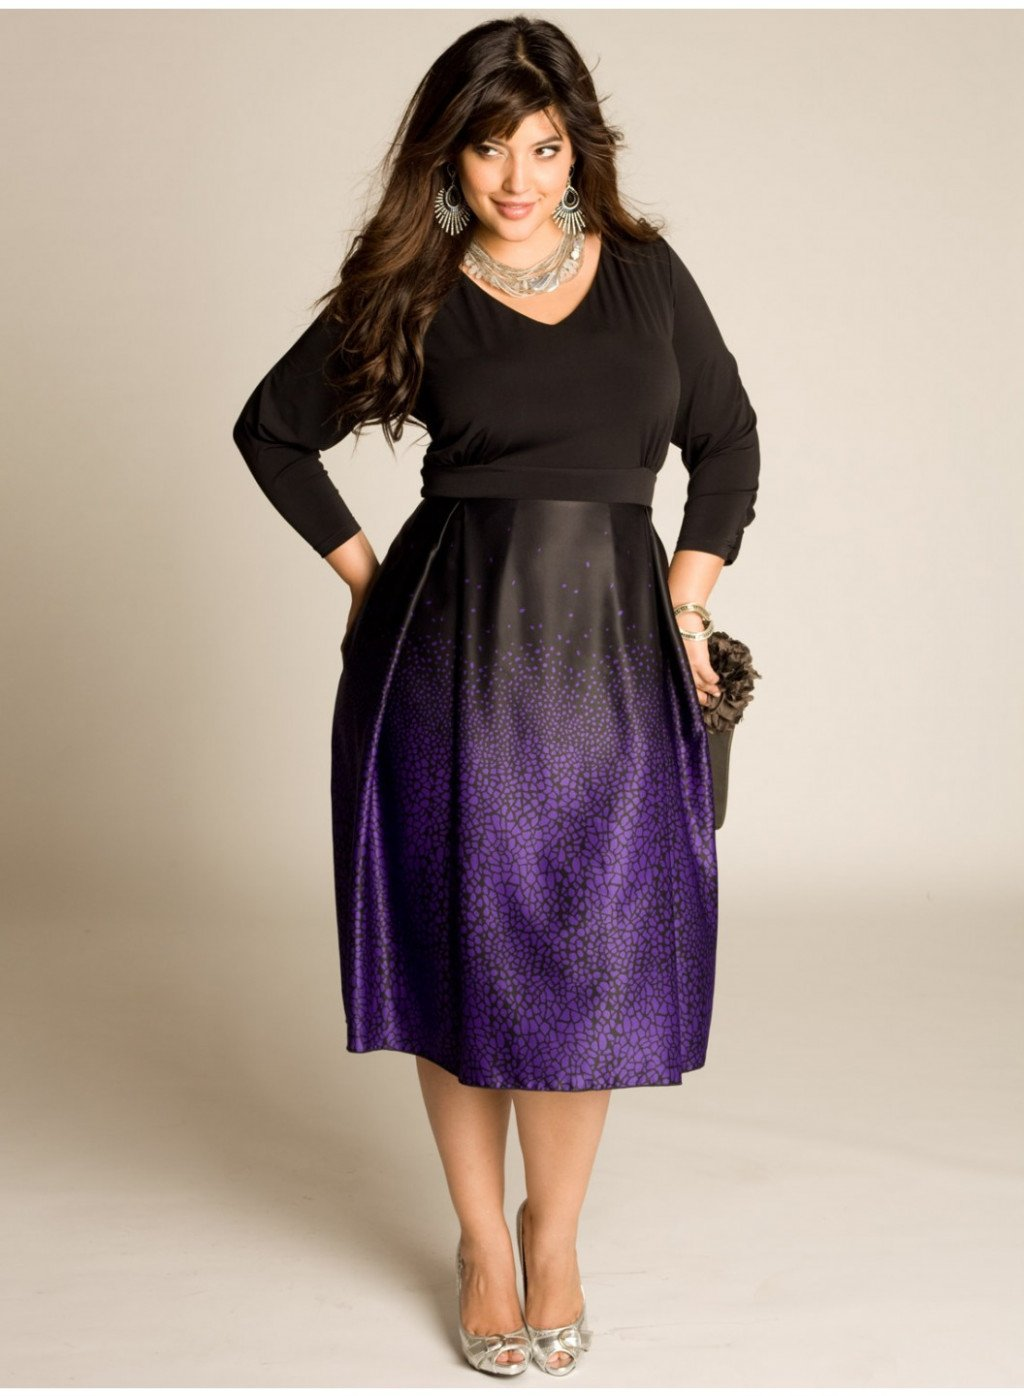 the best stores for womens plus size designer clothing